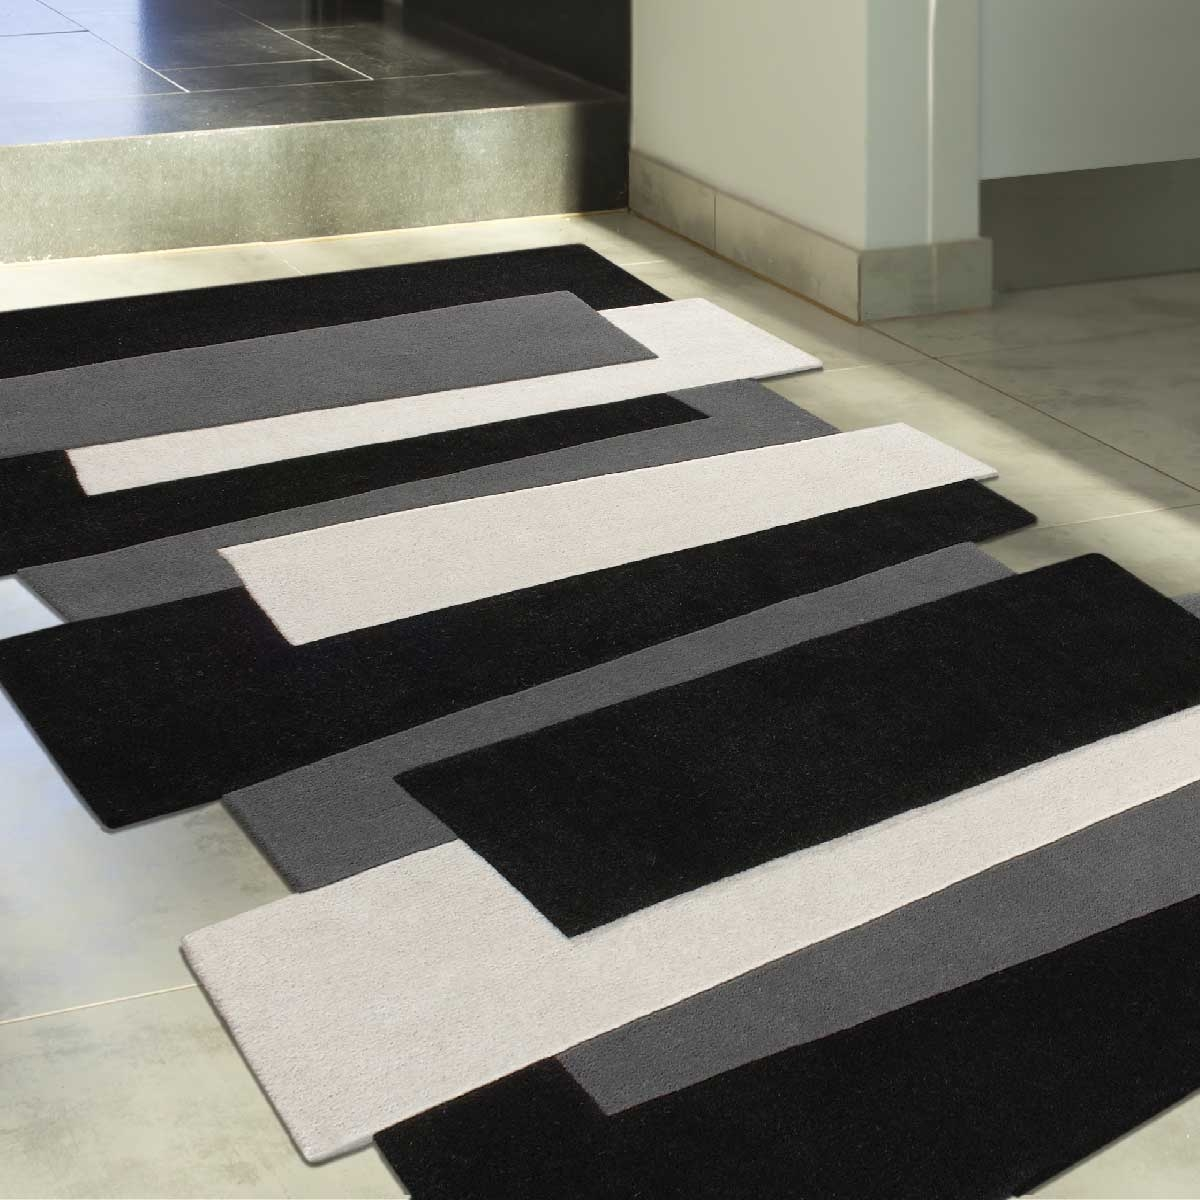 tapis de cuisine rouge design avec des id es int ressantes pour la conception de. Black Bedroom Furniture Sets. Home Design Ideas